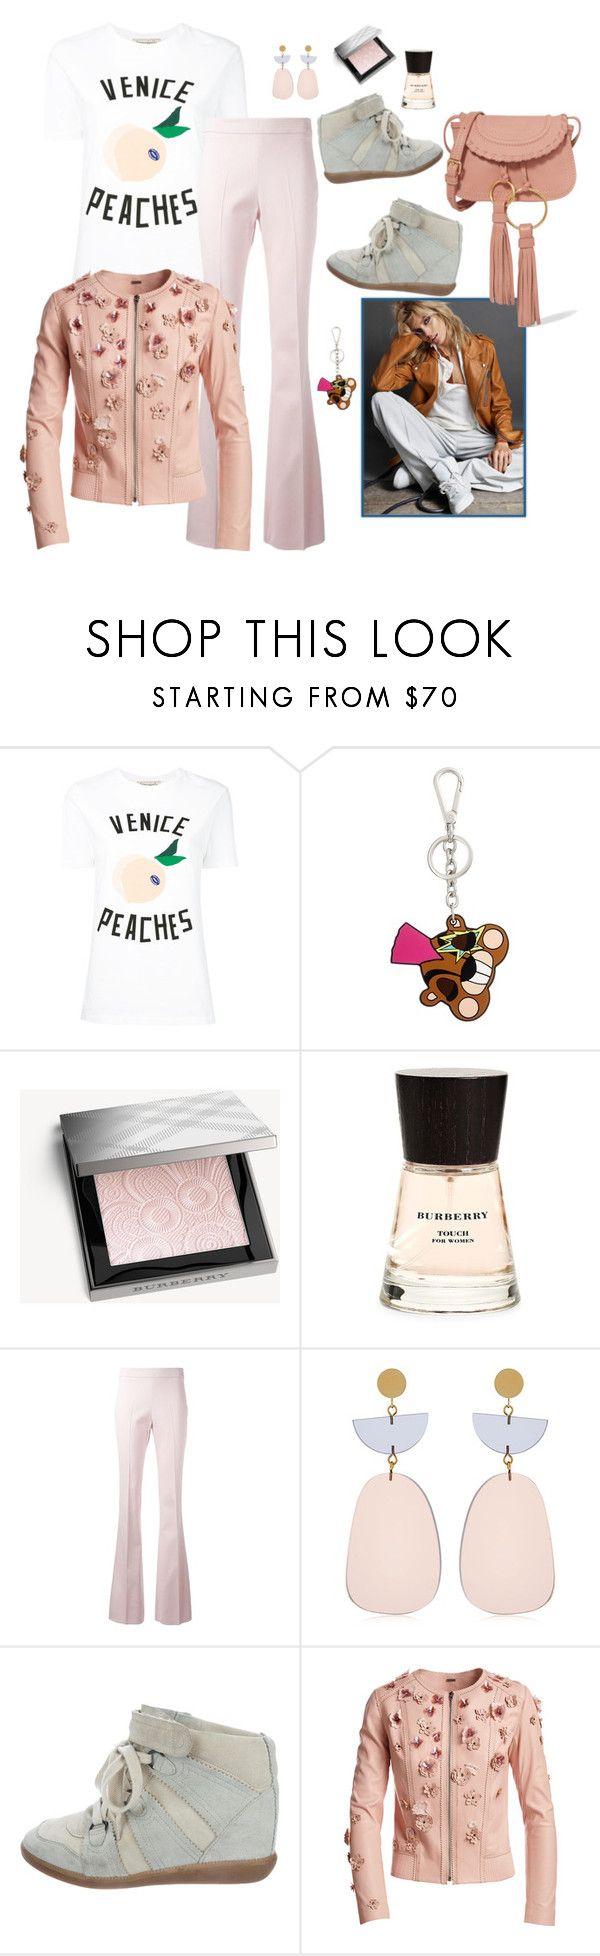 """""""Lazy Friday"""" by juliabachmann ❤ liked on Polyvore featuring Être Cécile, Dsquared2, Burberry, Giambattista Valli, Isabel Marant, Anja, Elie Tahari and See by Chloé"""